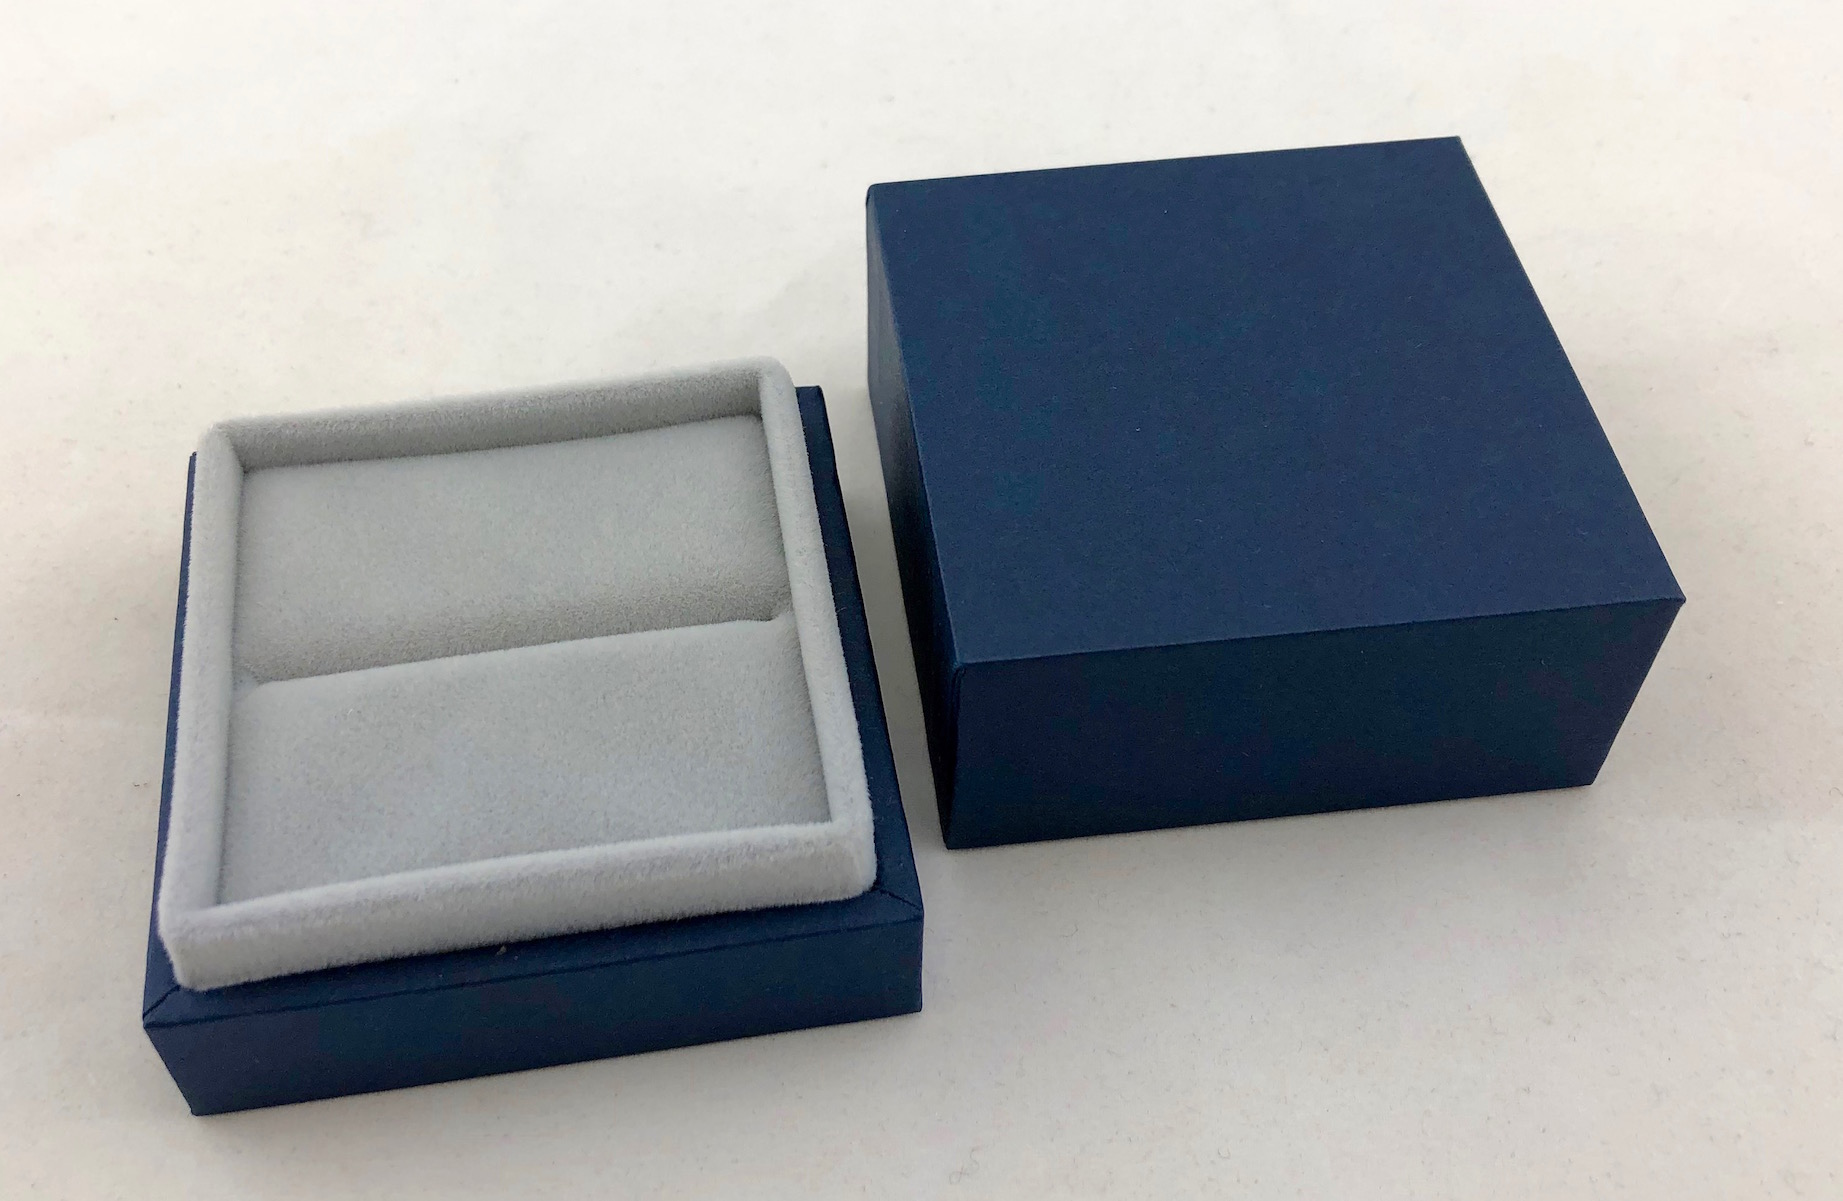 New Blue Envy Ring Box - open